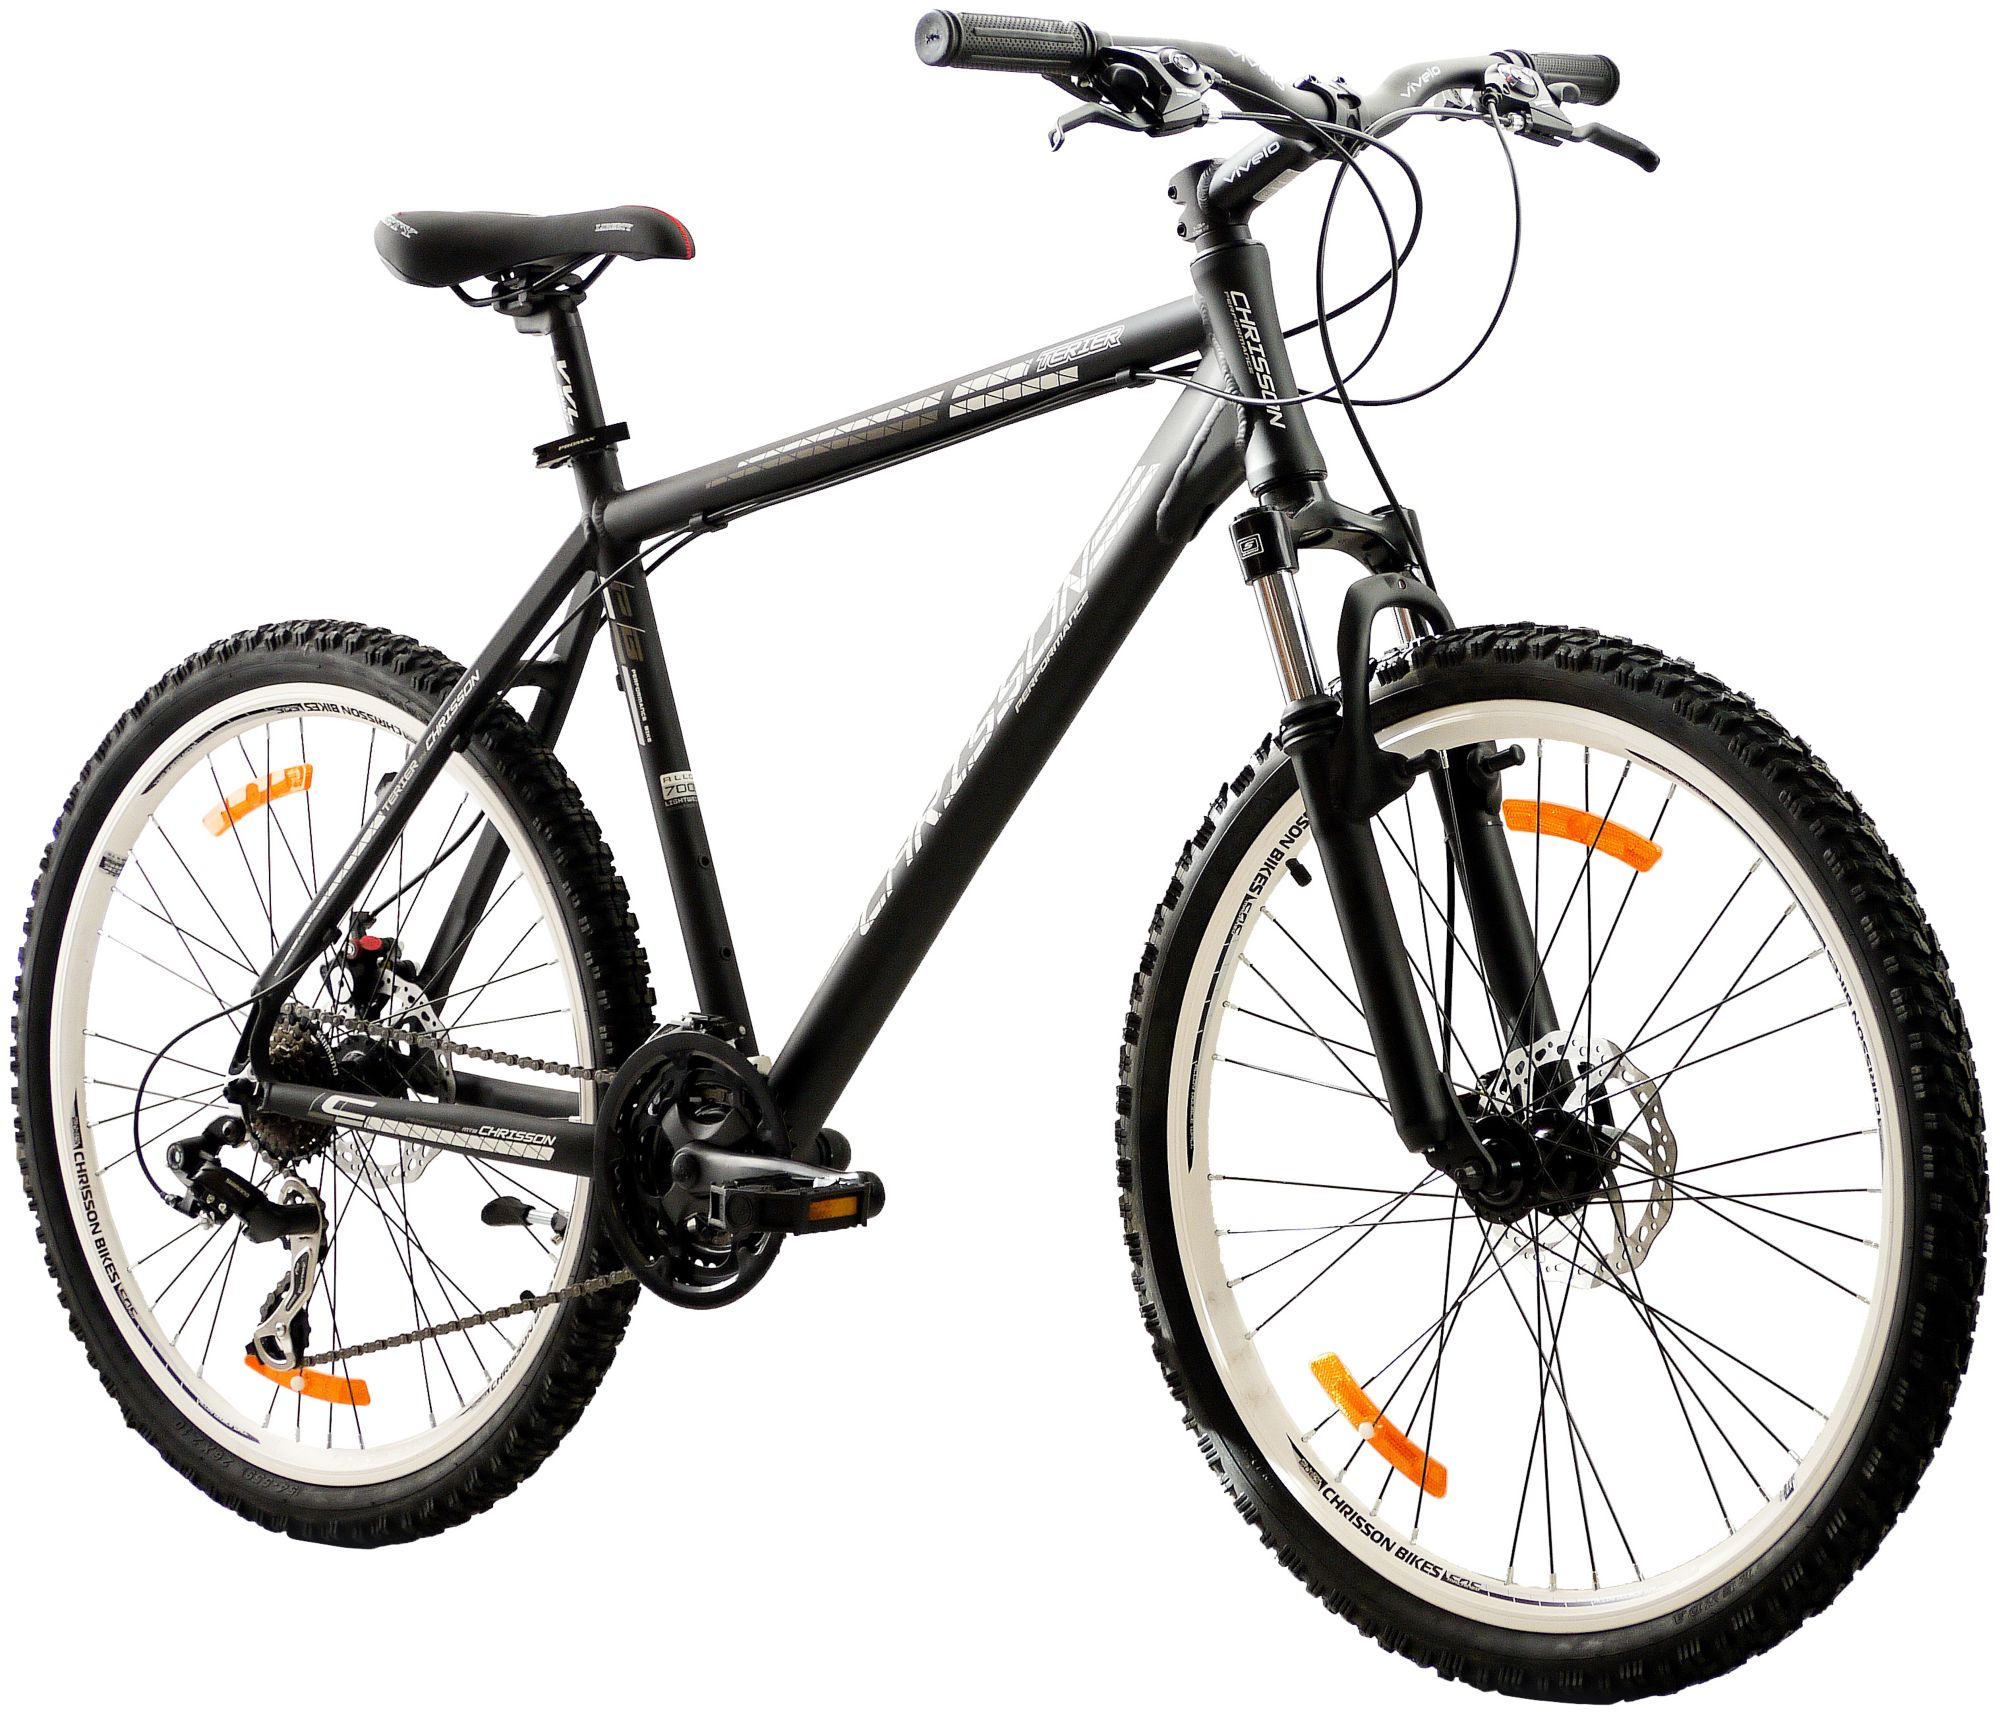 CHRISSON  Mountainbike »TERIER«, 26 Zoll, 21 Gang, Scheibenbremsen